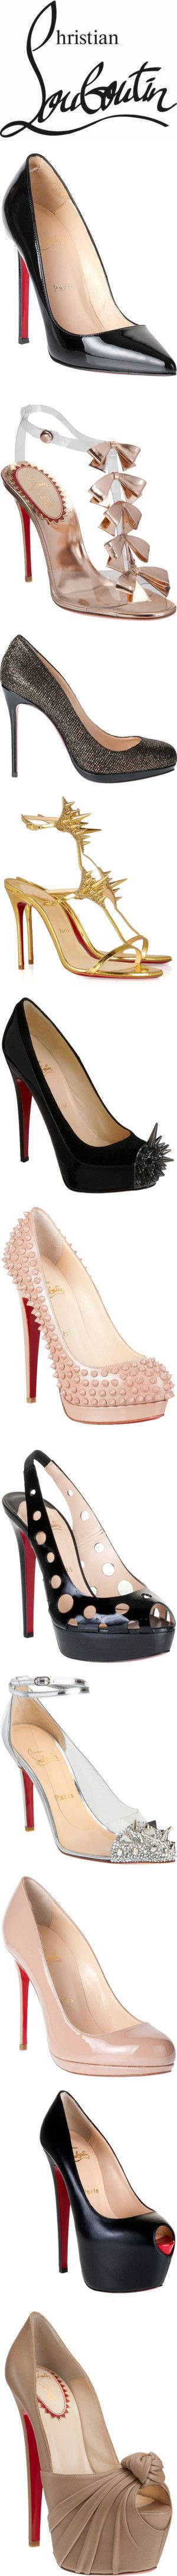 Let's just have a moment of silence for Christian Louboutin